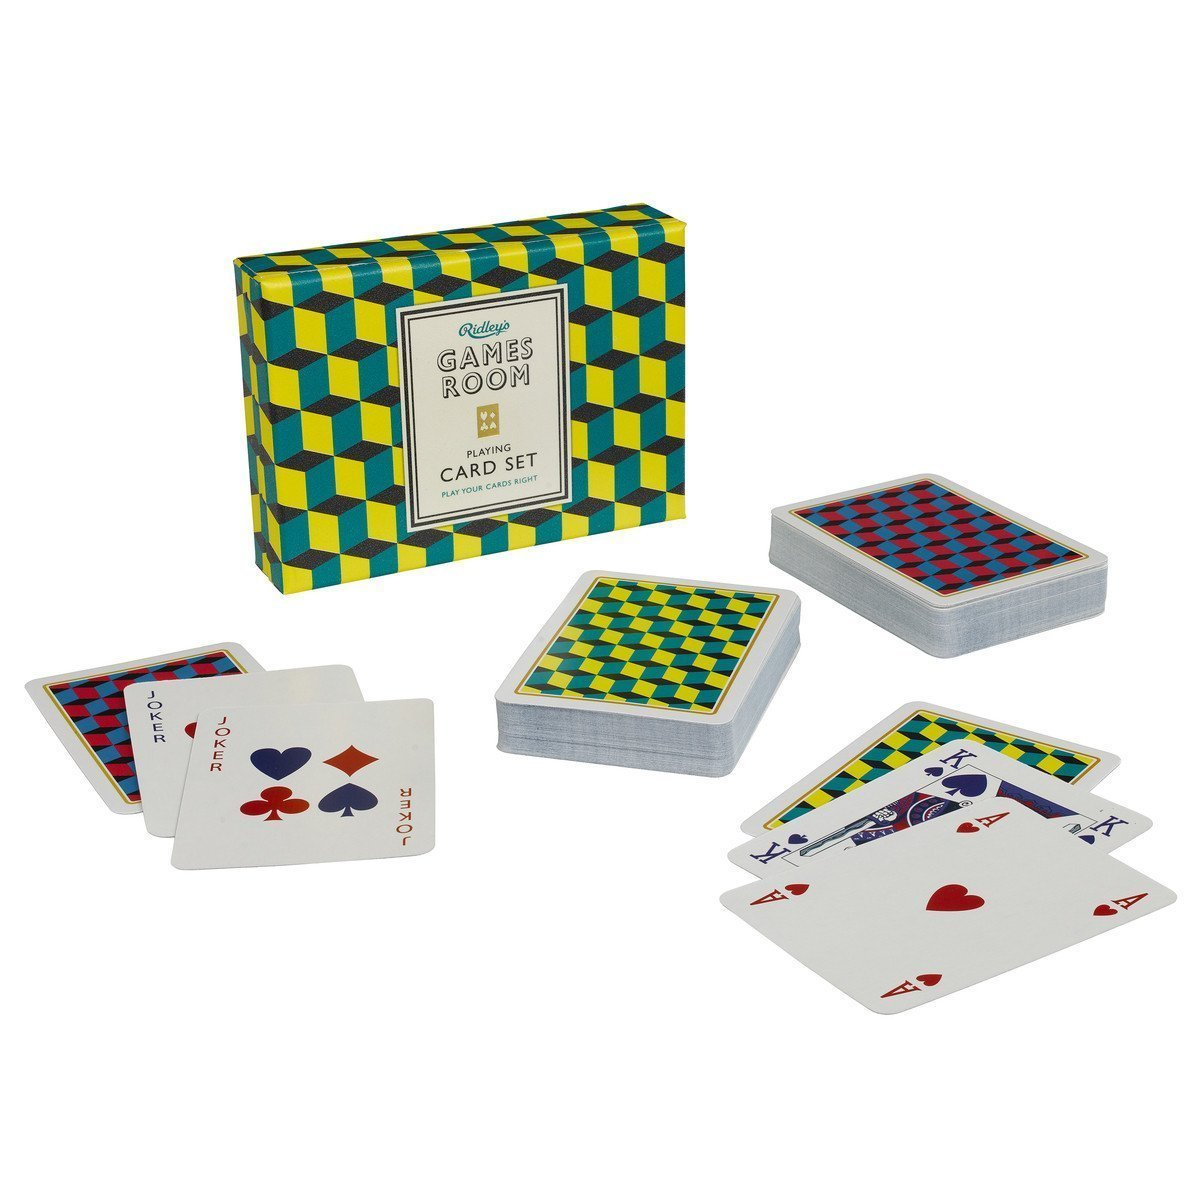 Games Room Playing Cards - Ridleys - Hugs For Kids